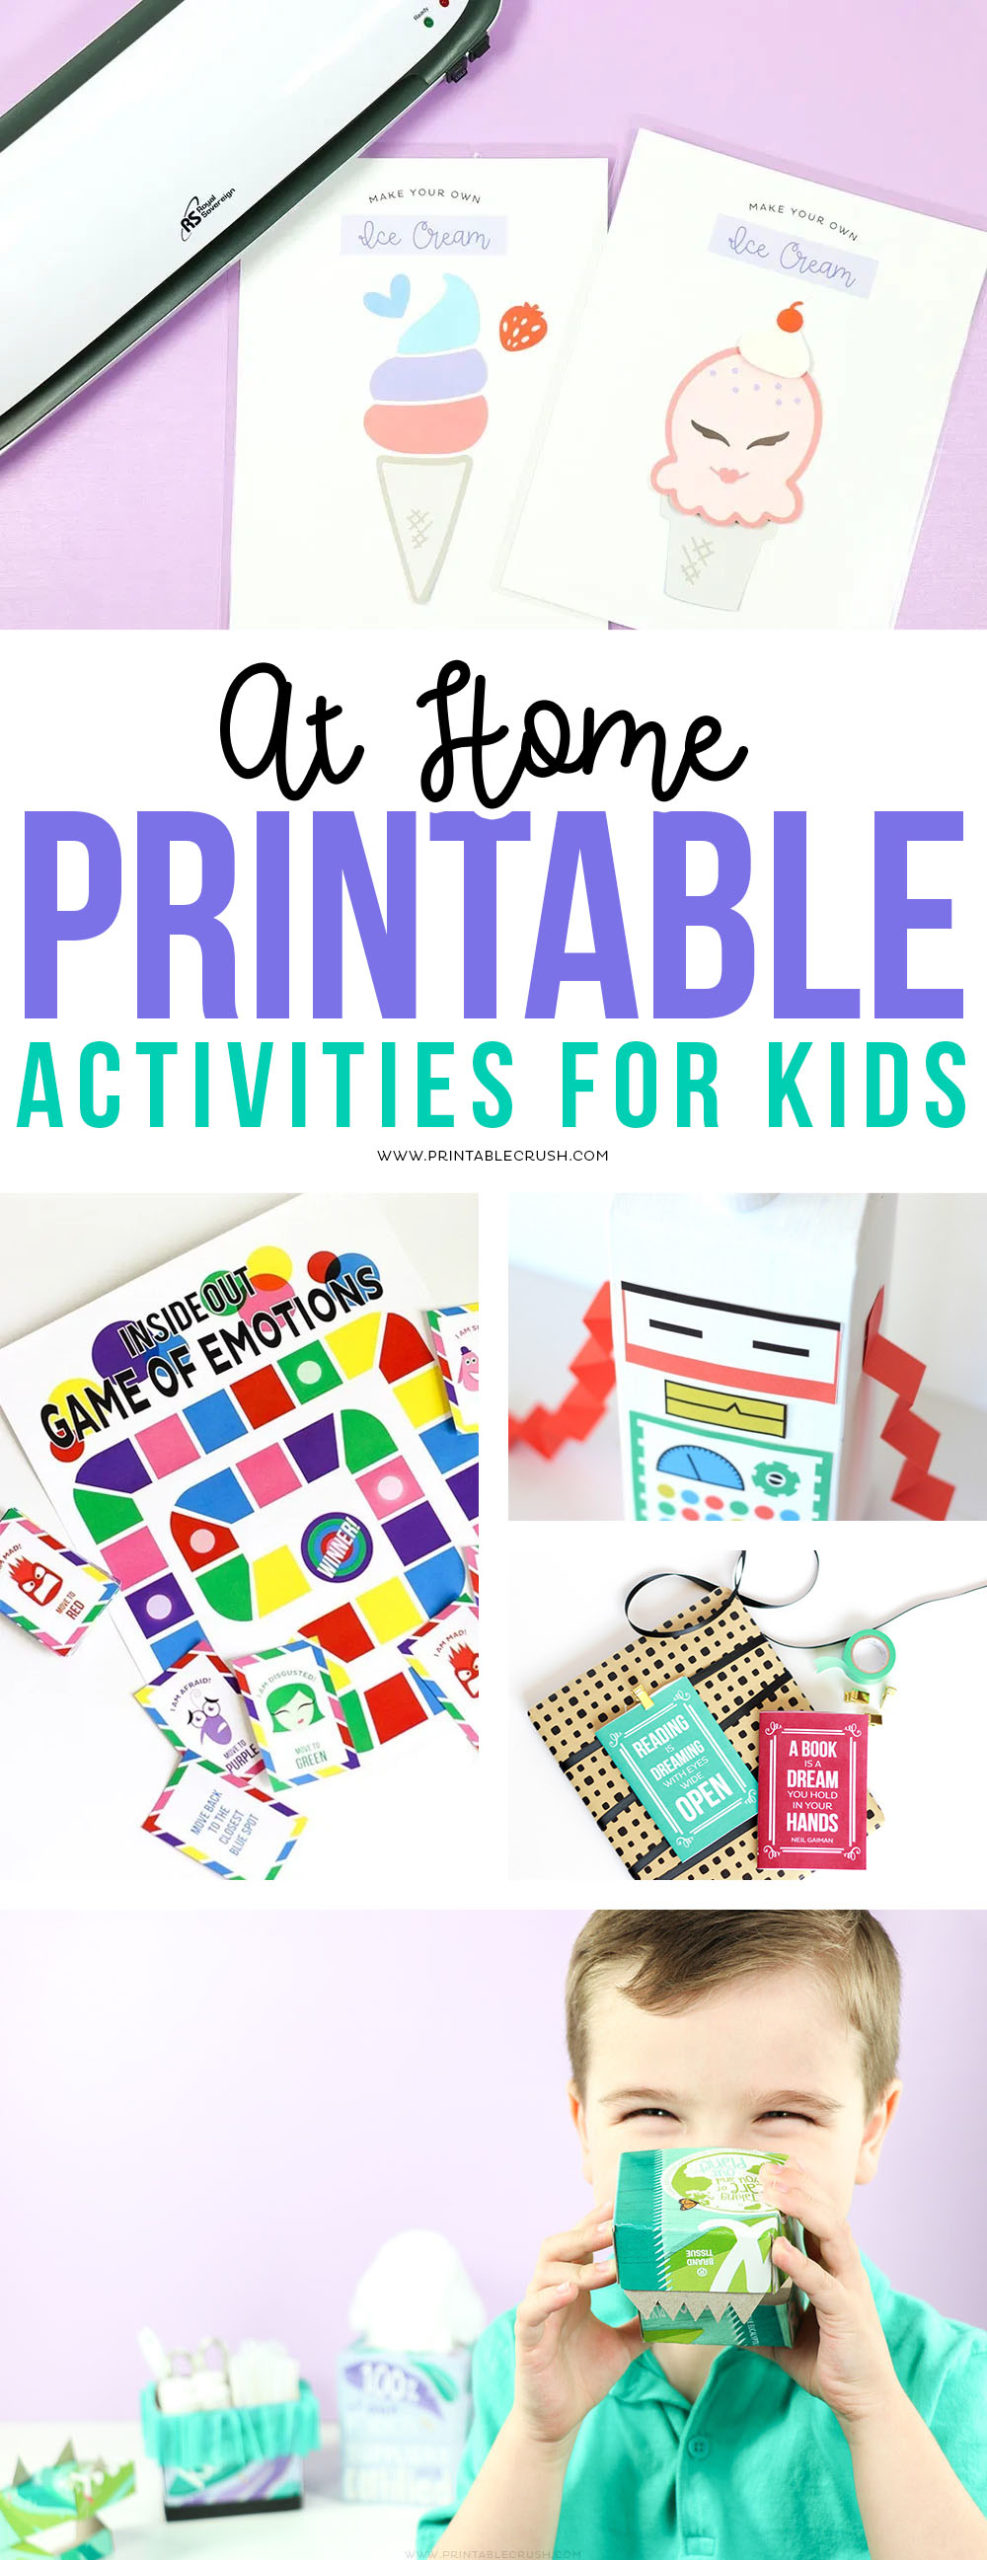 At Home Printable Activities for Kids